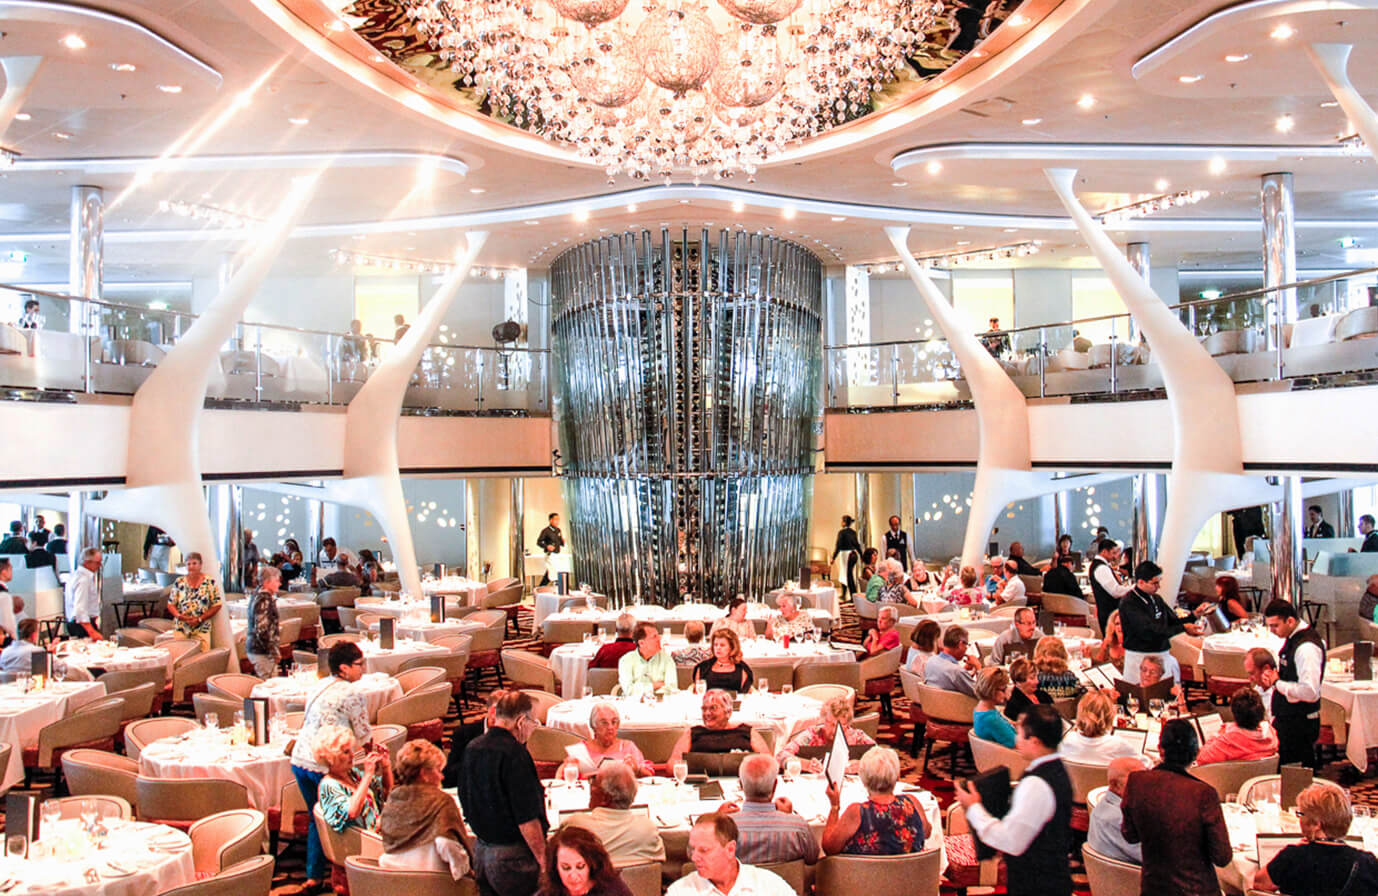 A big dining room on Cruise Ship during service